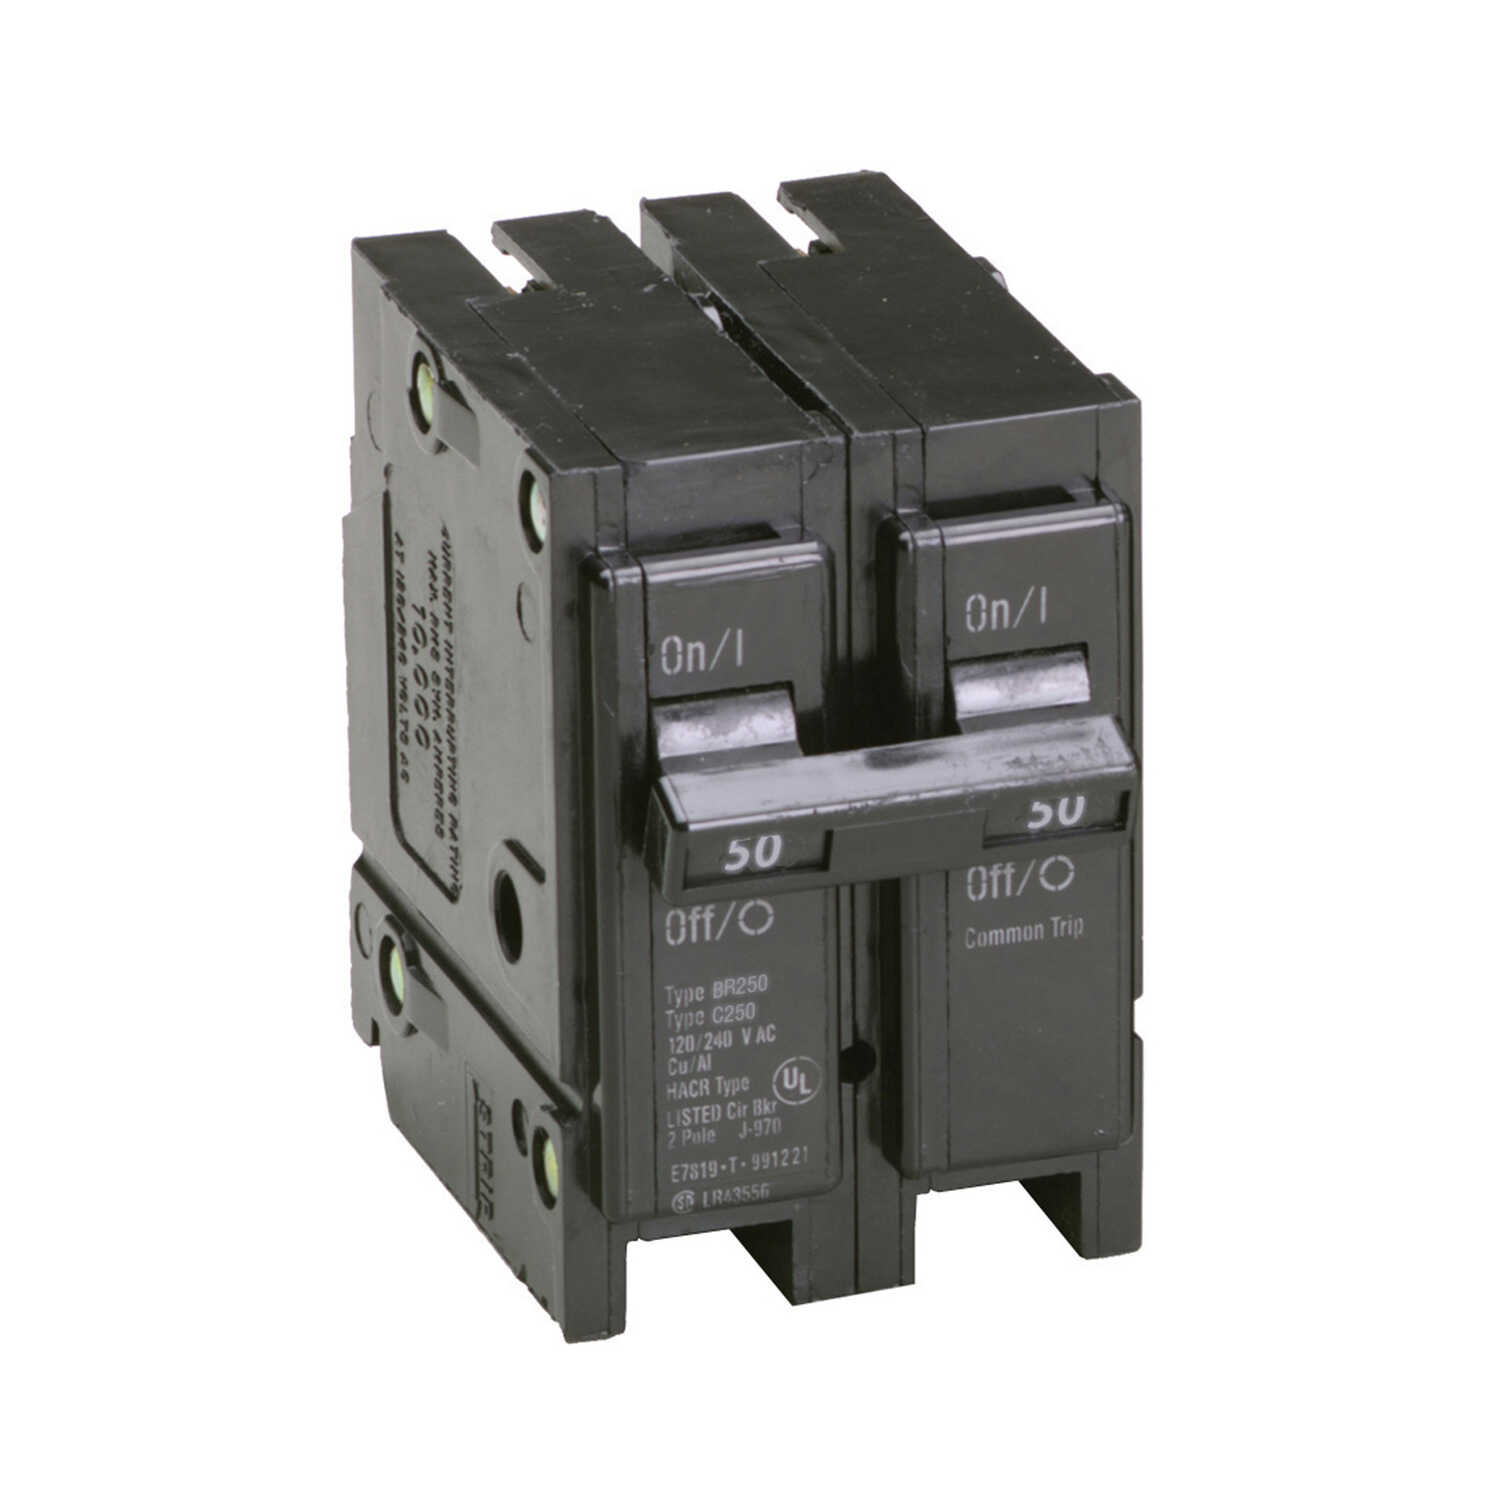 Eaton  Cutler-Hammer  50 amps Plug In  2-Pole  Circuit Breaker